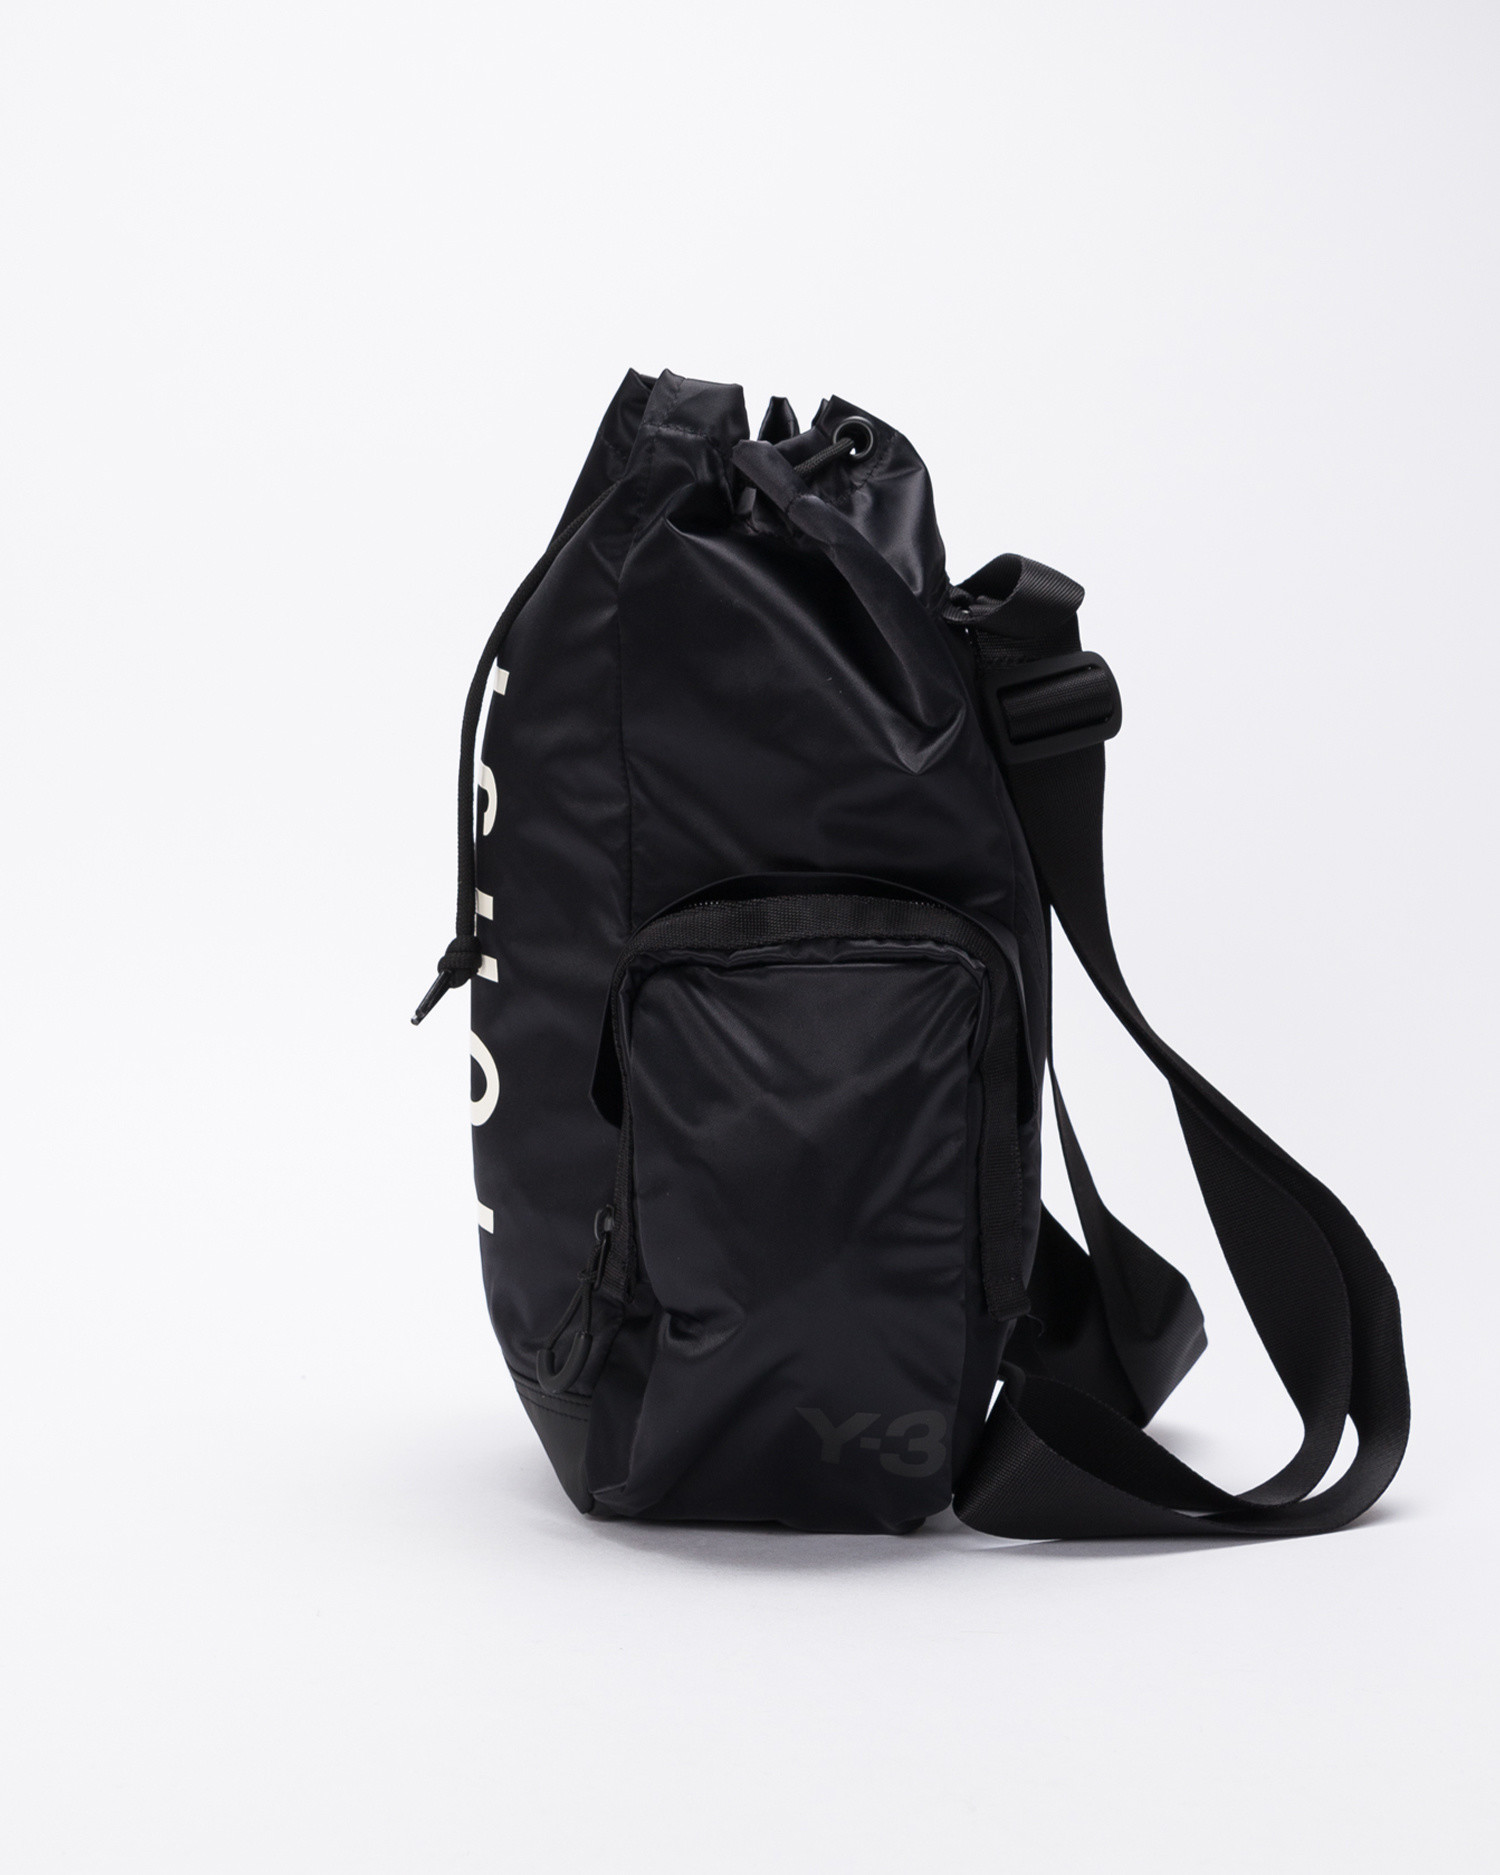 Adidas Y-3 Mini Backpack Black